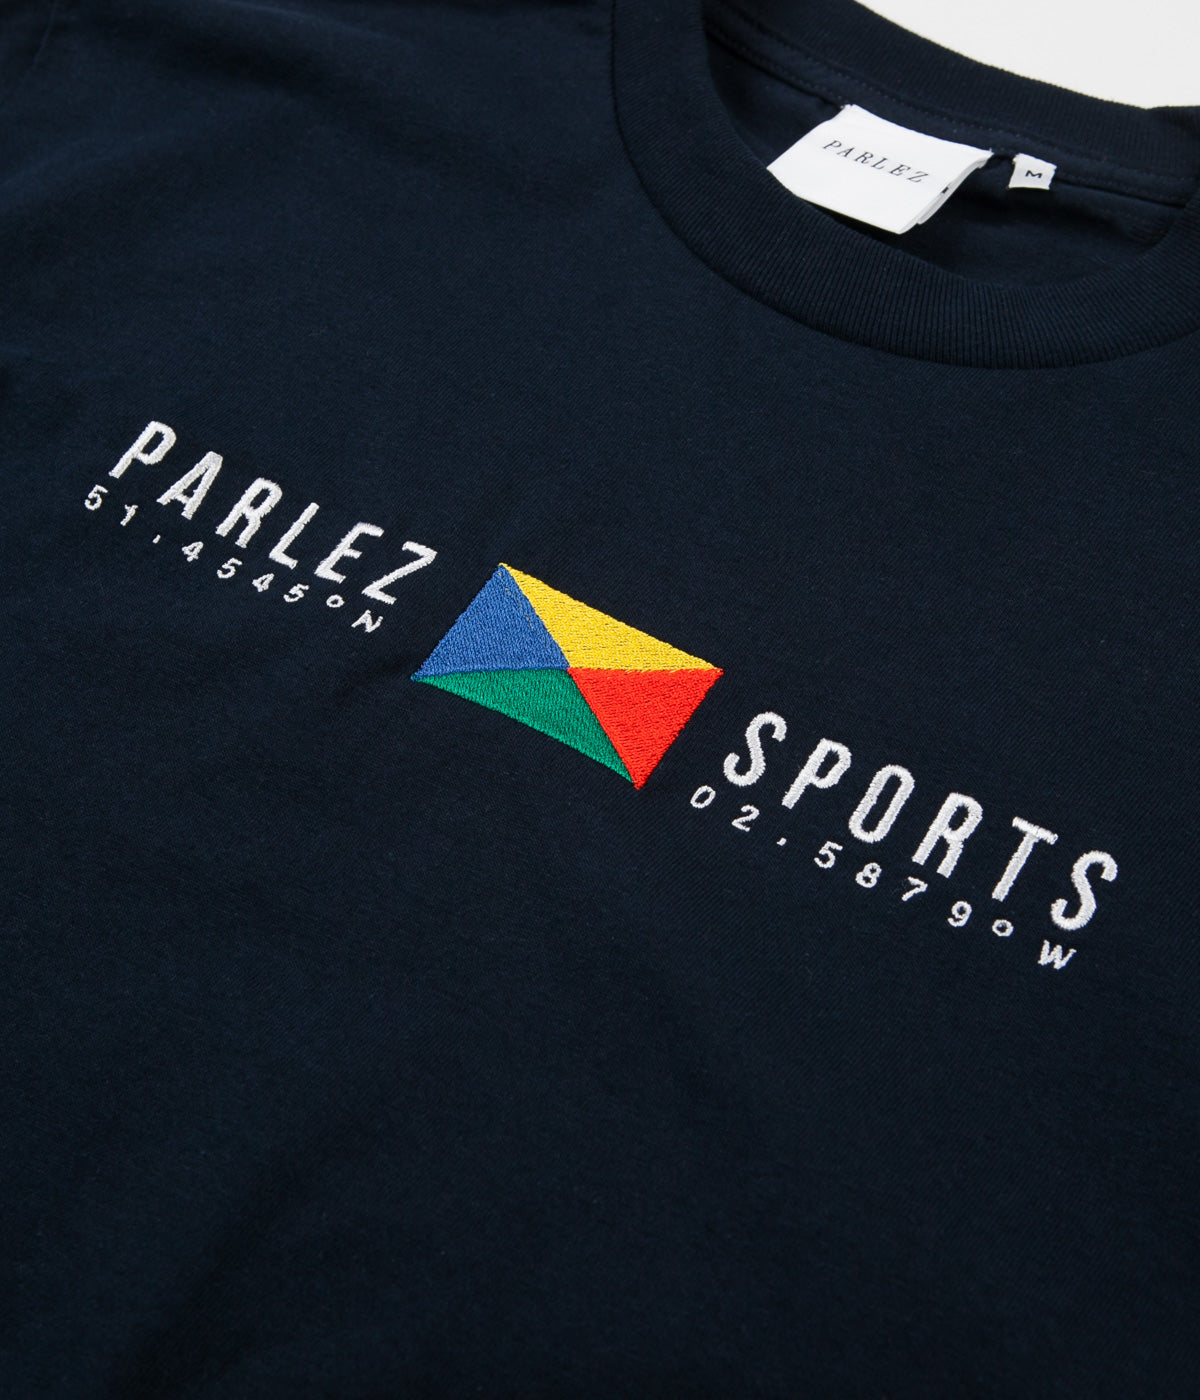 Parlez Tjalk T-Shirt - Navy